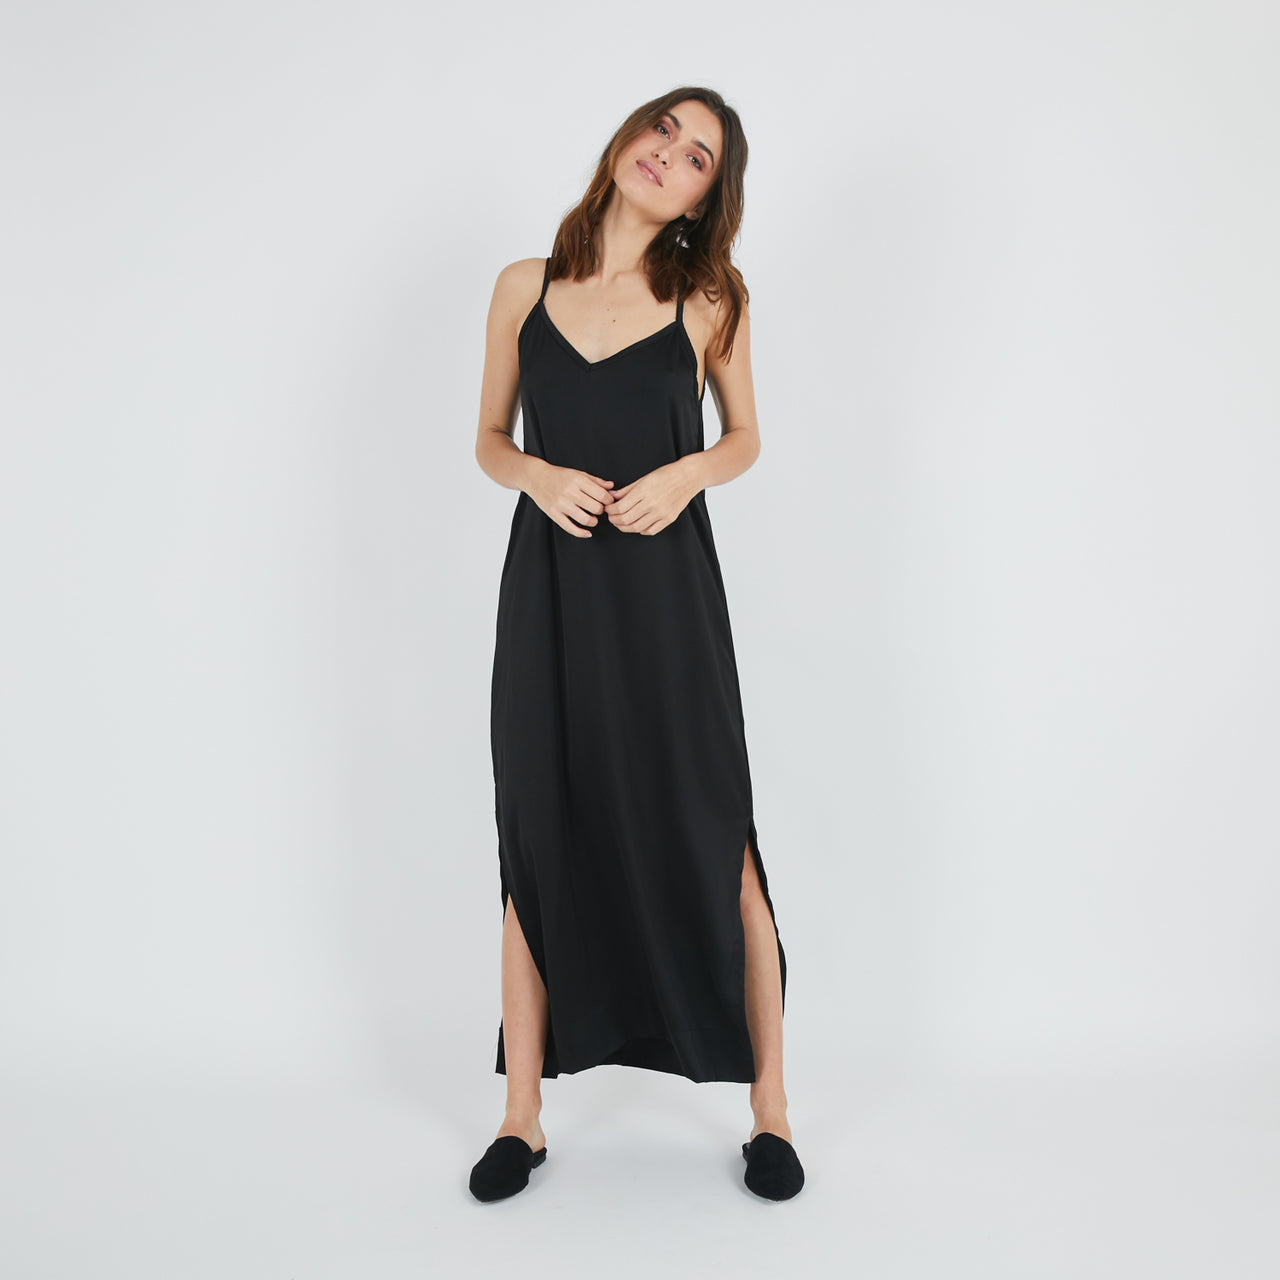 Satai Black Dress